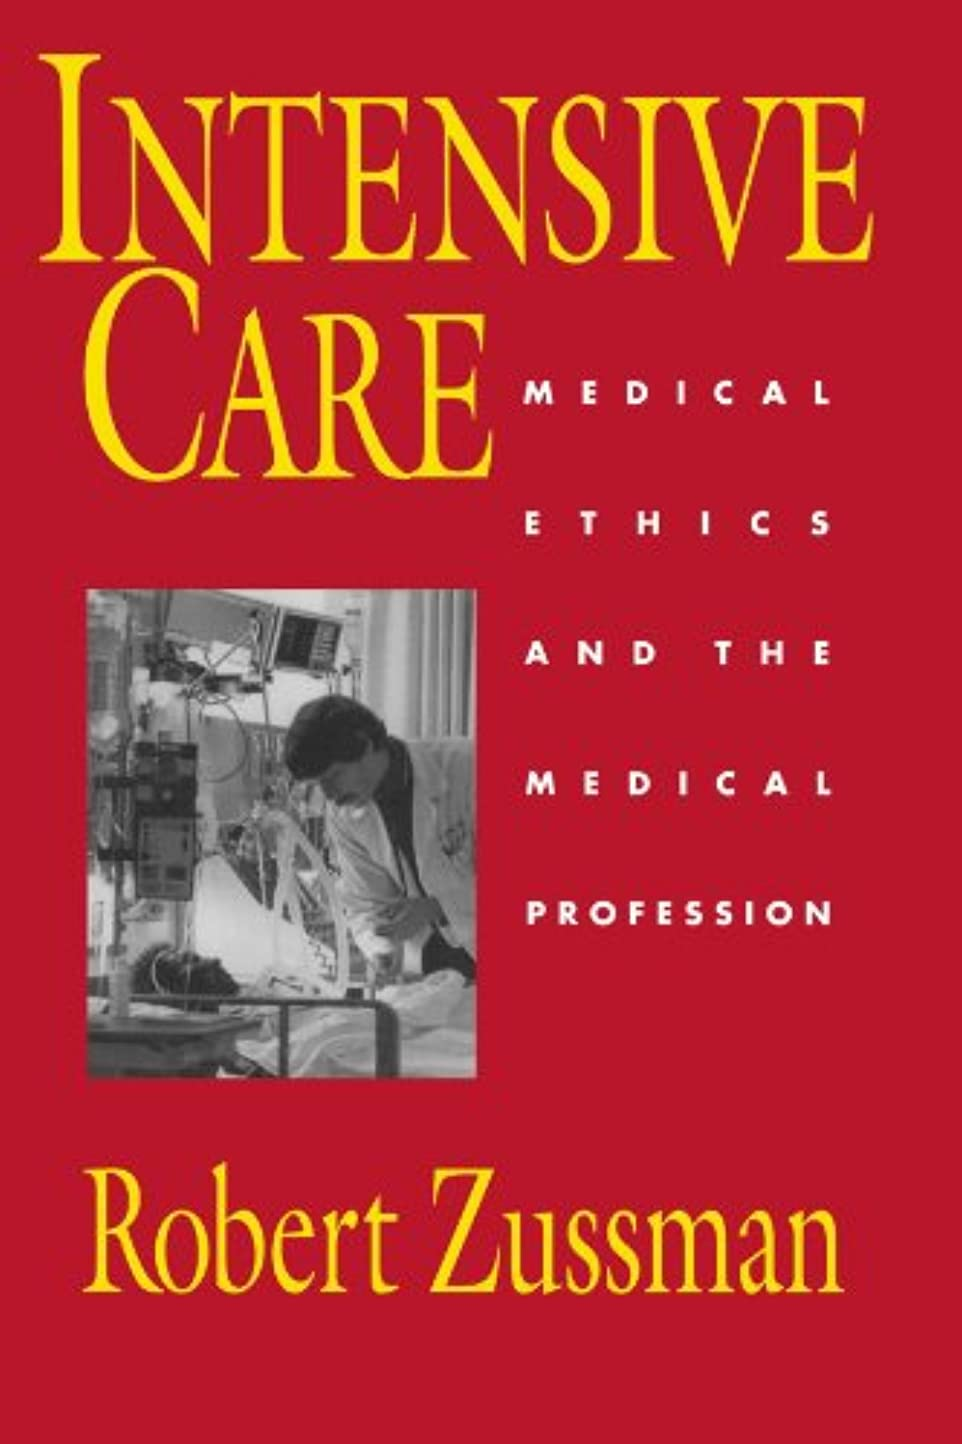 代数胆嚢正直Intensive Care: Medical Ethics and the Medical Profession